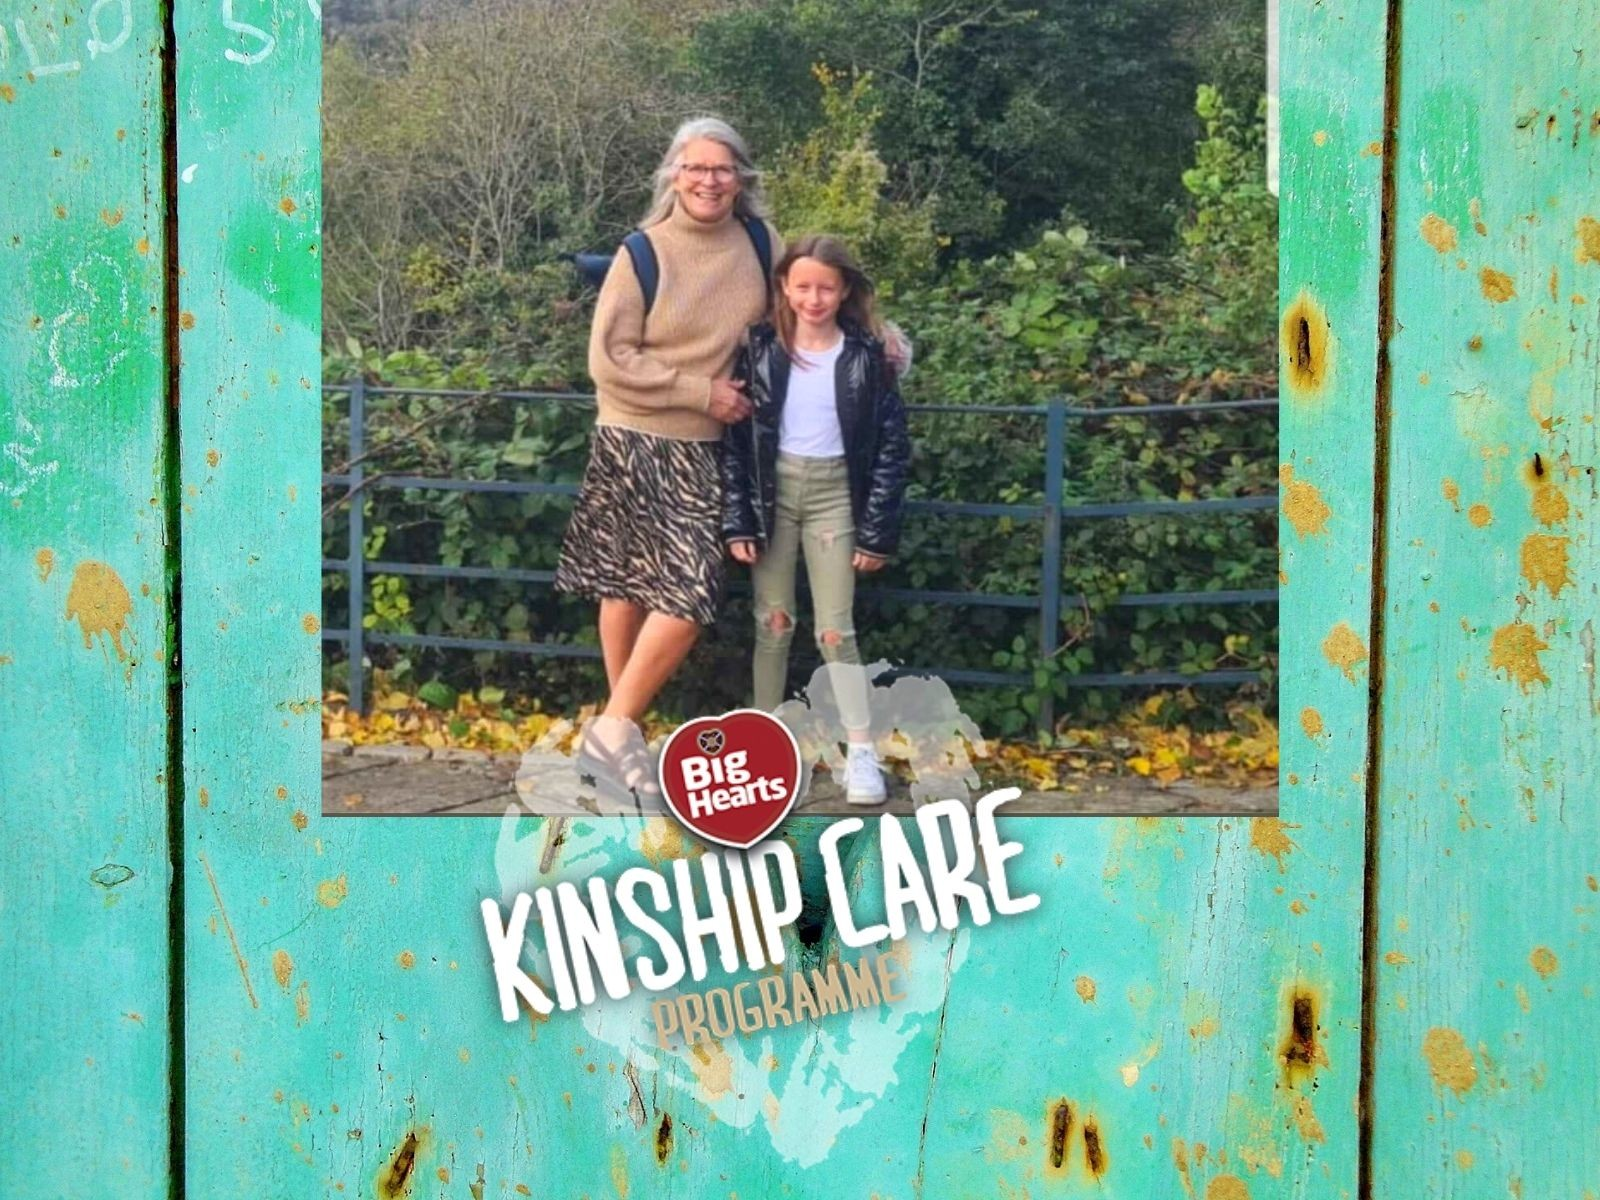 """» Lesley's Kinship Care story: """"From day one, I felt very welcomed"""""""